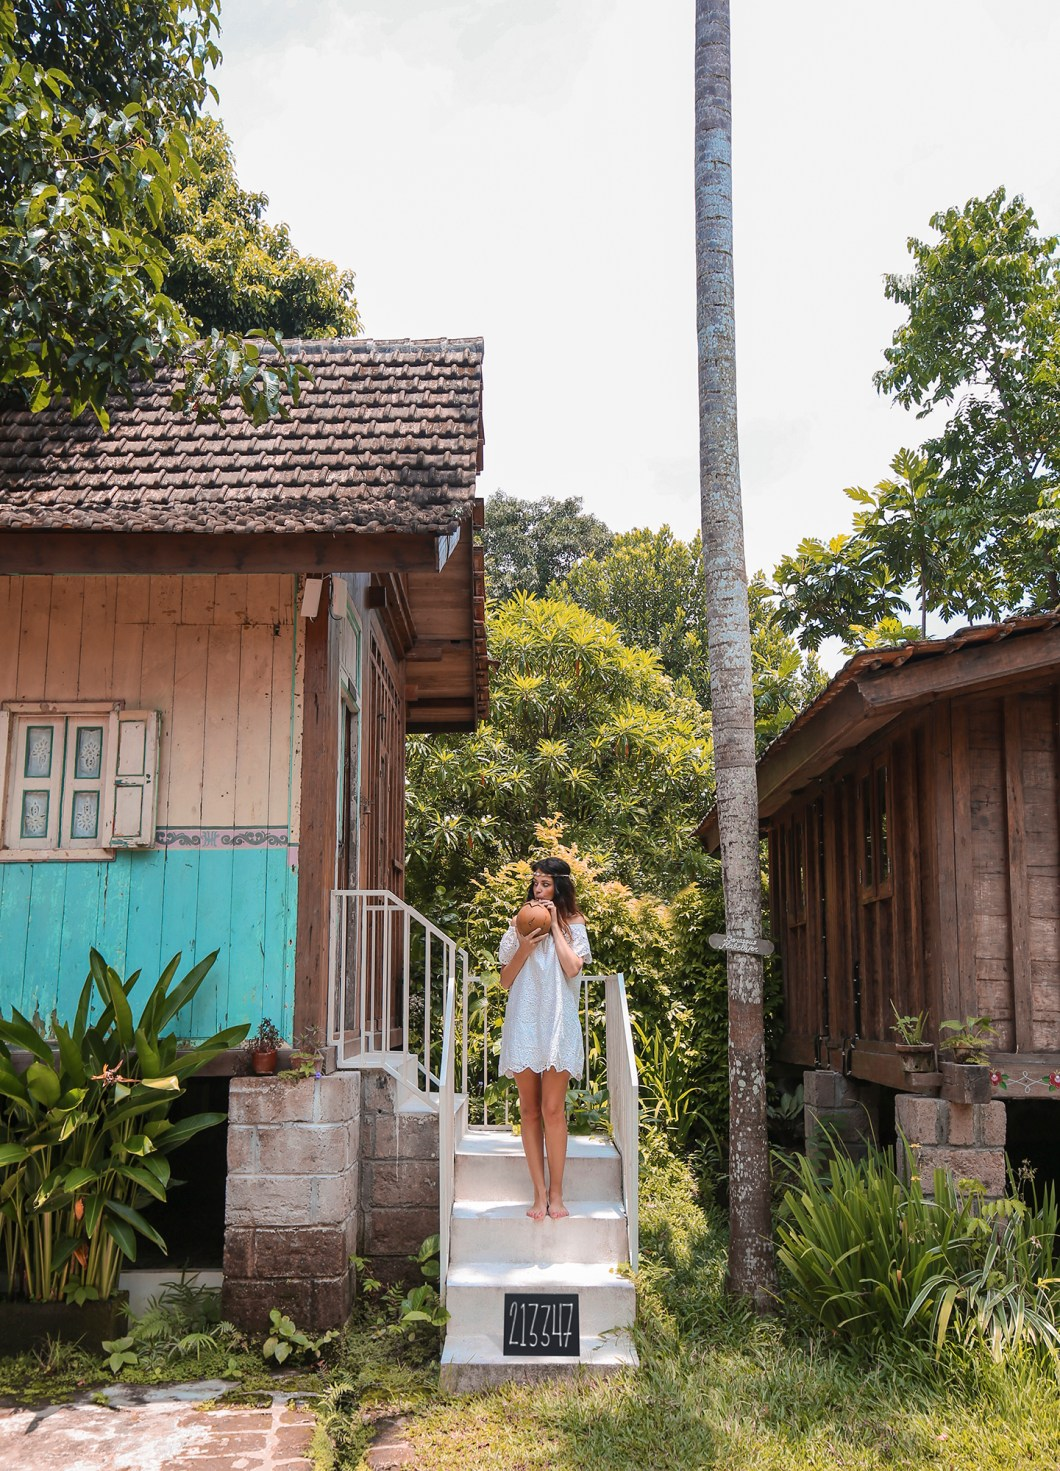 Jungleroom Bali | How Far From Home